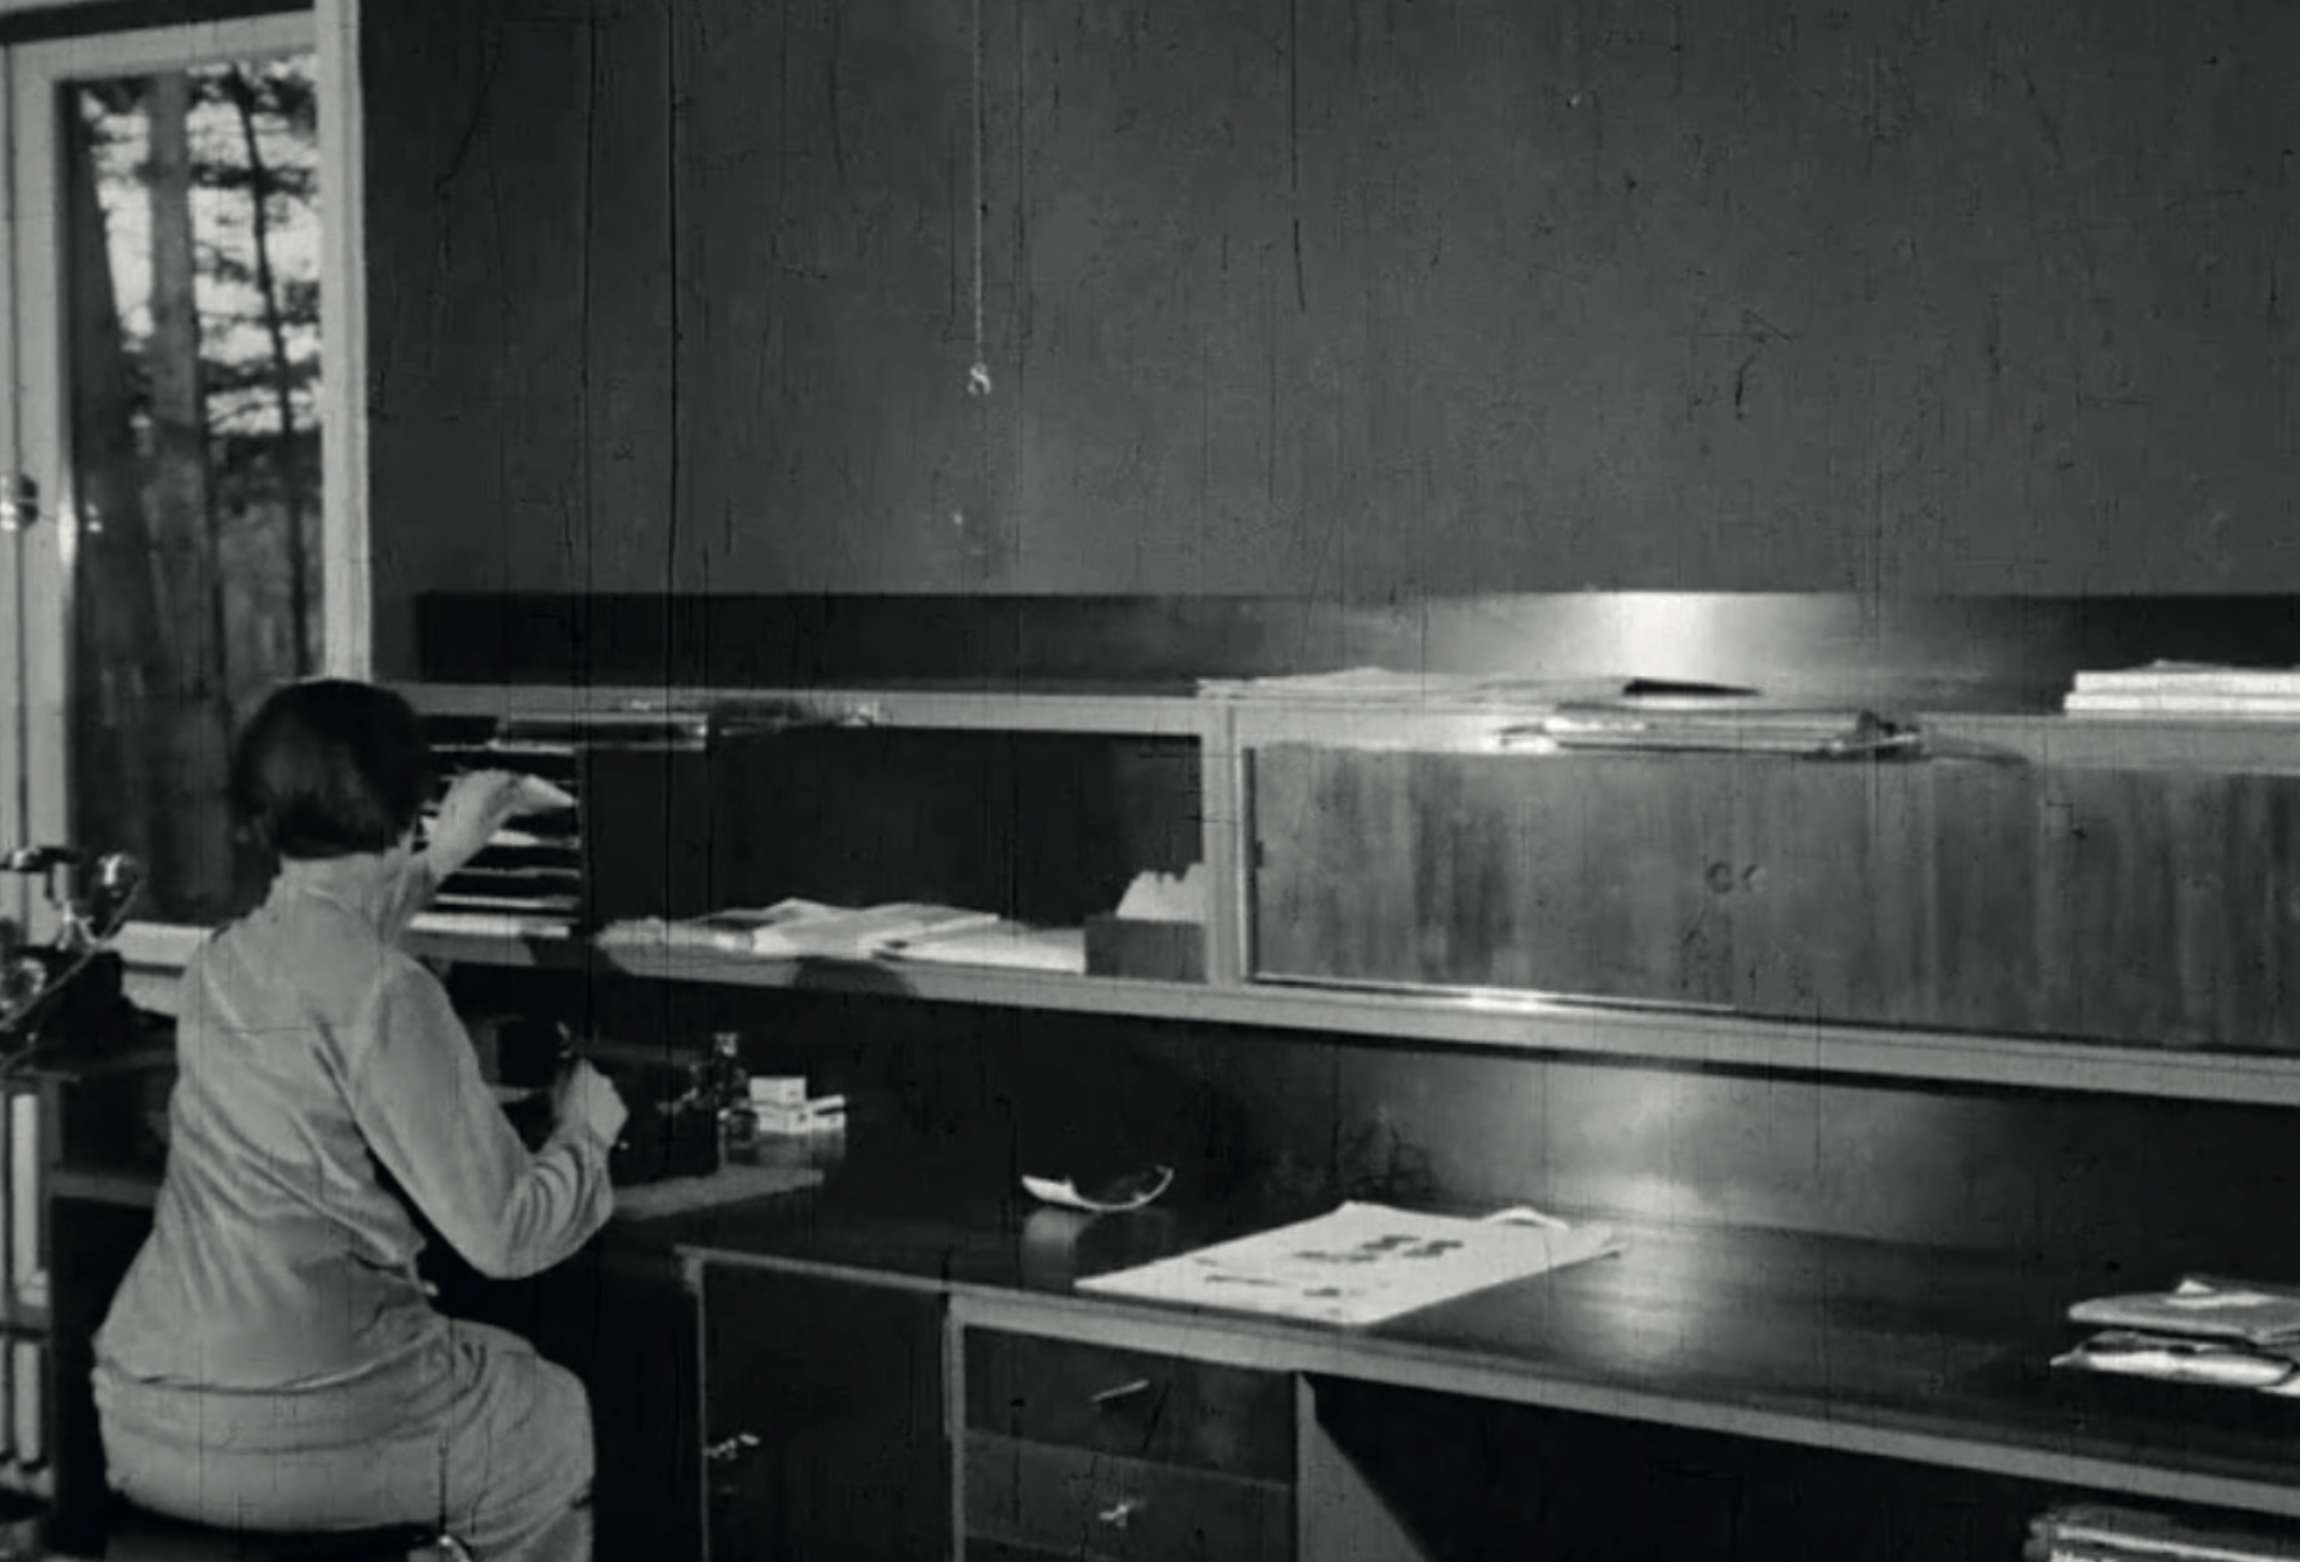 The big double desk. The desk also has a special lamp. Image from: How to live healthily and economically? Film series in four episodes by Walter Gropius and the Humboldt film GMBH, 1926.